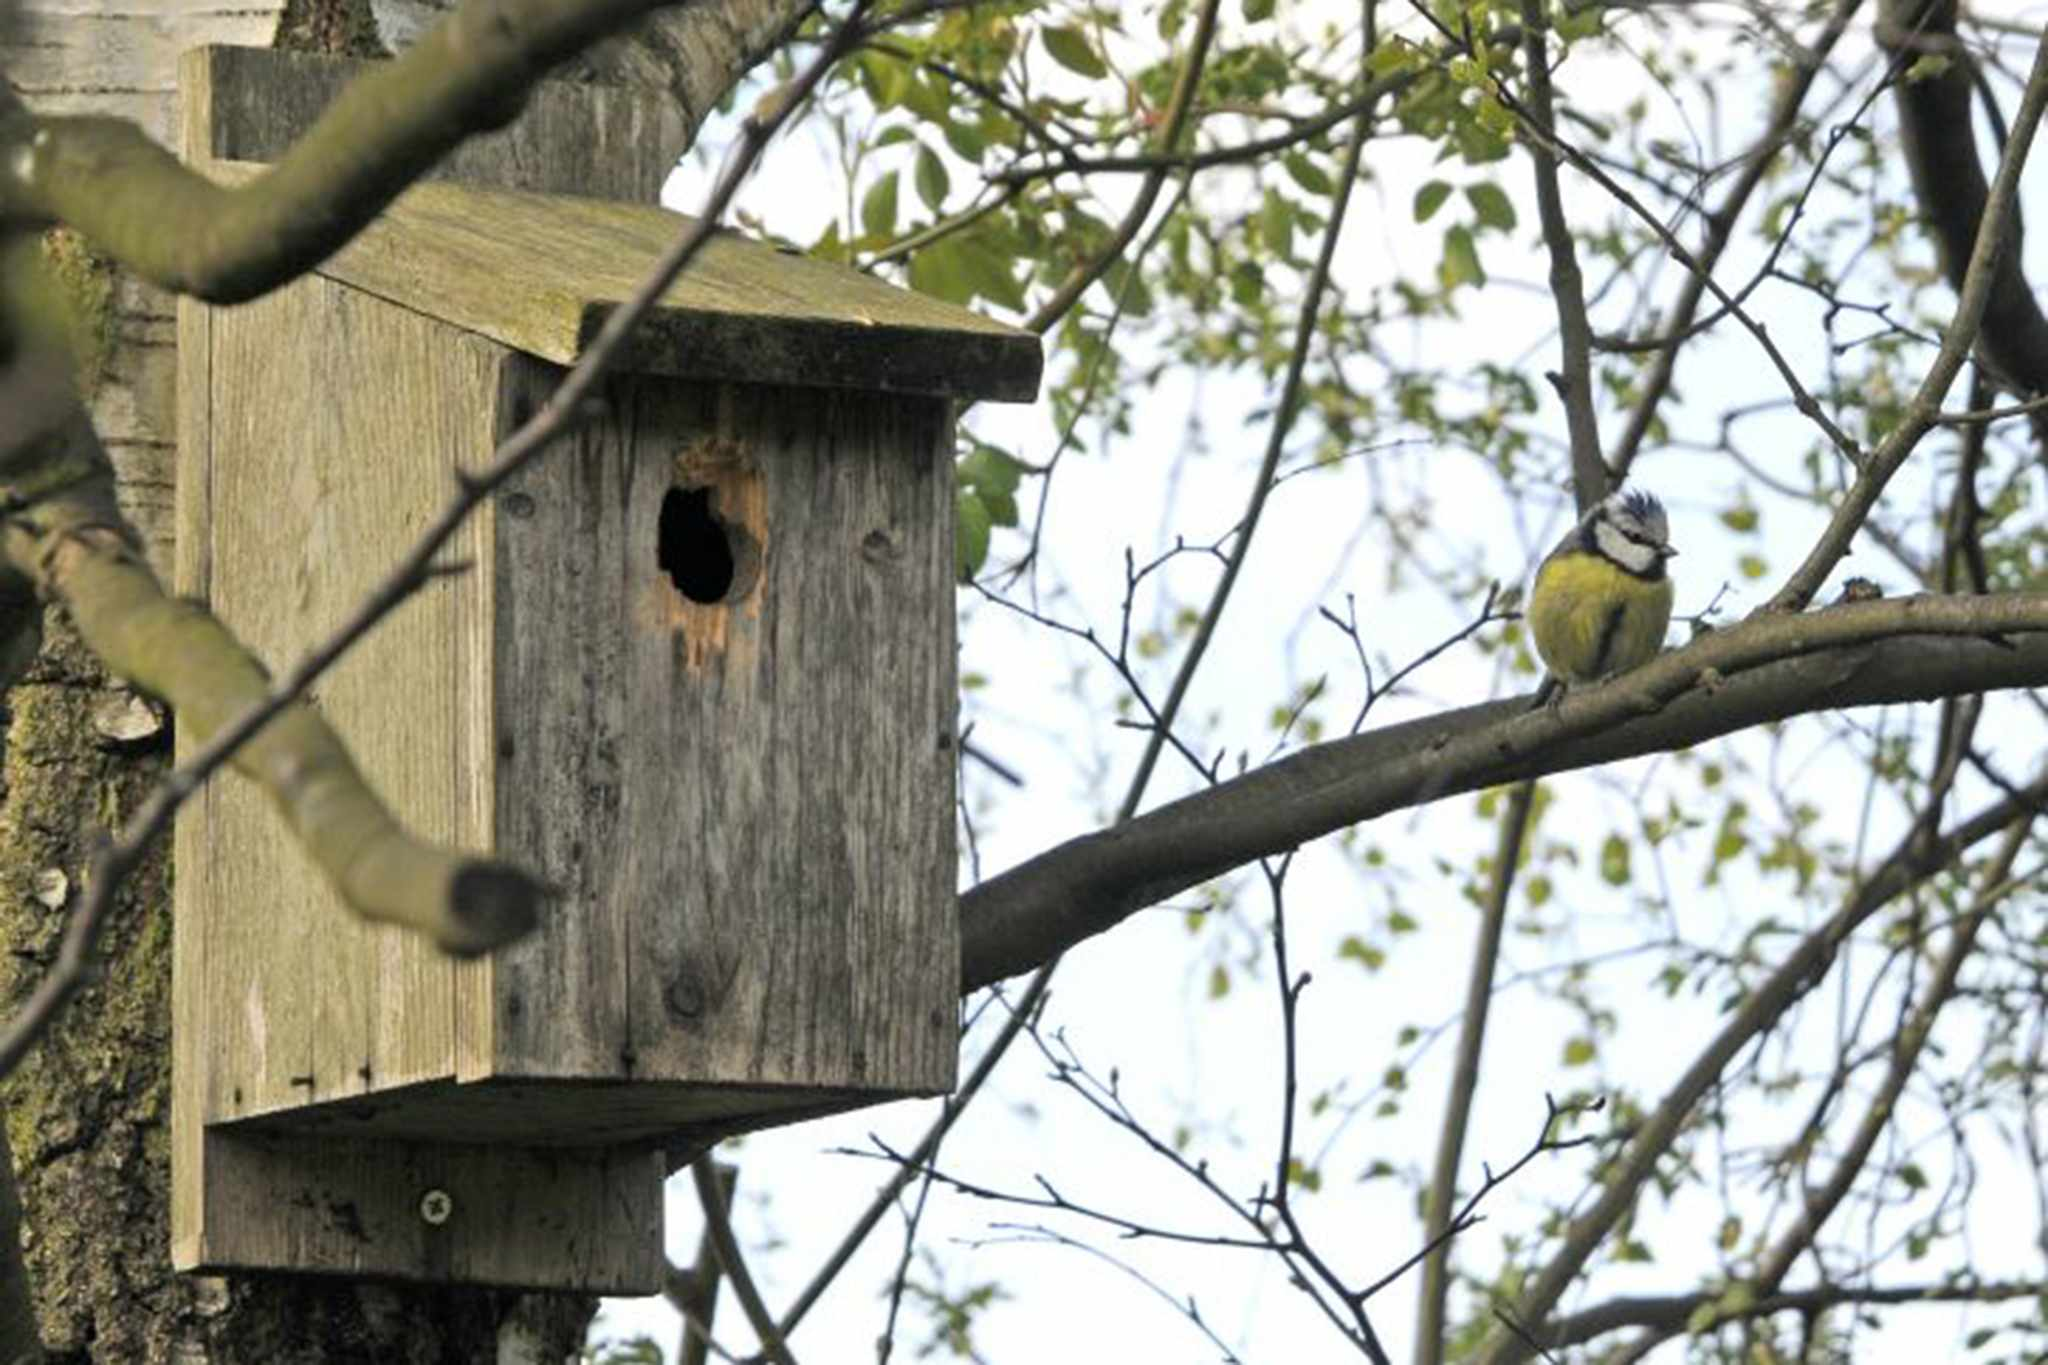 A blue tit perched near a nesting box